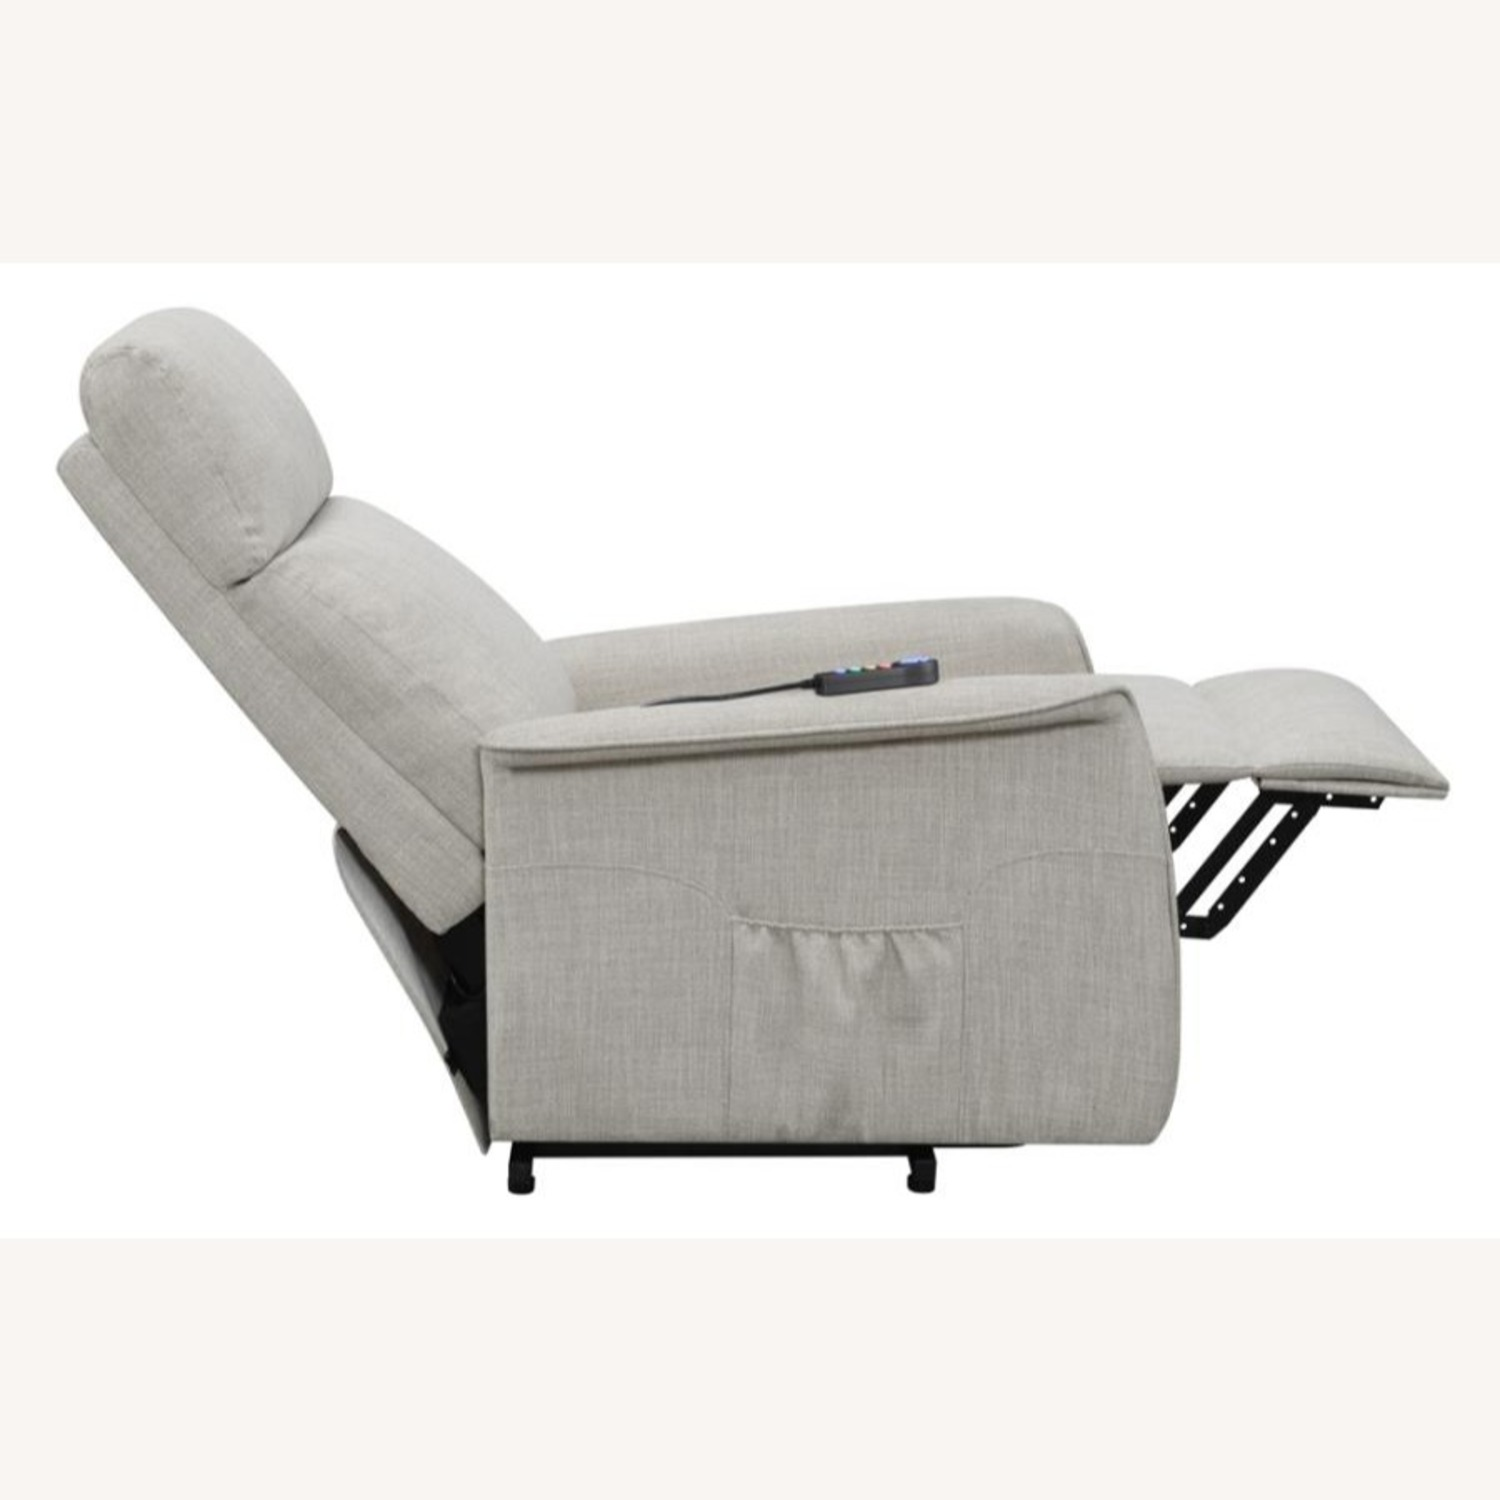 Power Lift Recliner Tufted In Beige Fabric - image-5